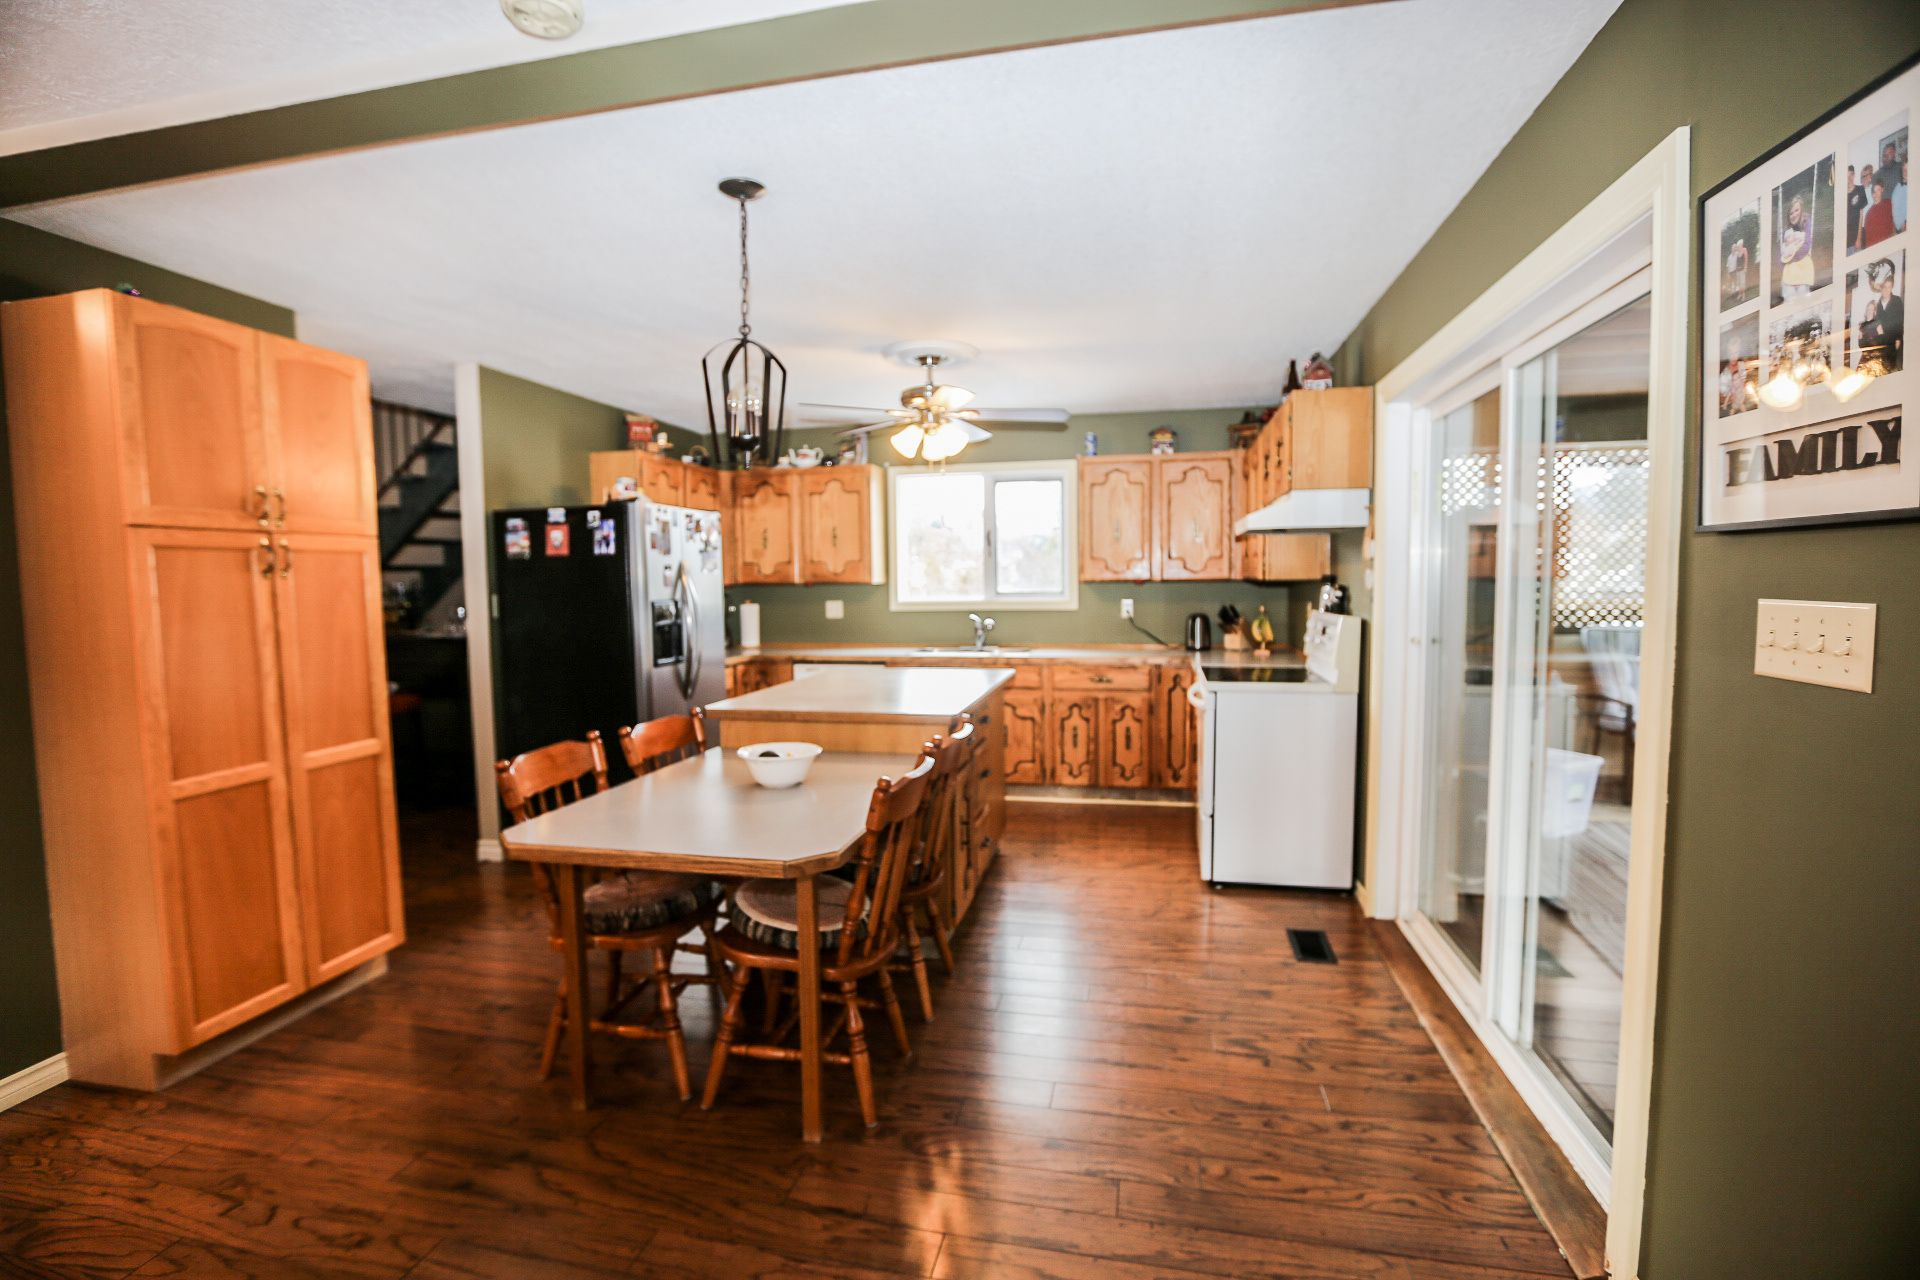 Photo 5: Photos: 434 ROBIN DRIVE: BARRIERE House for sale (NORTH EAST)  : MLS®# 160553